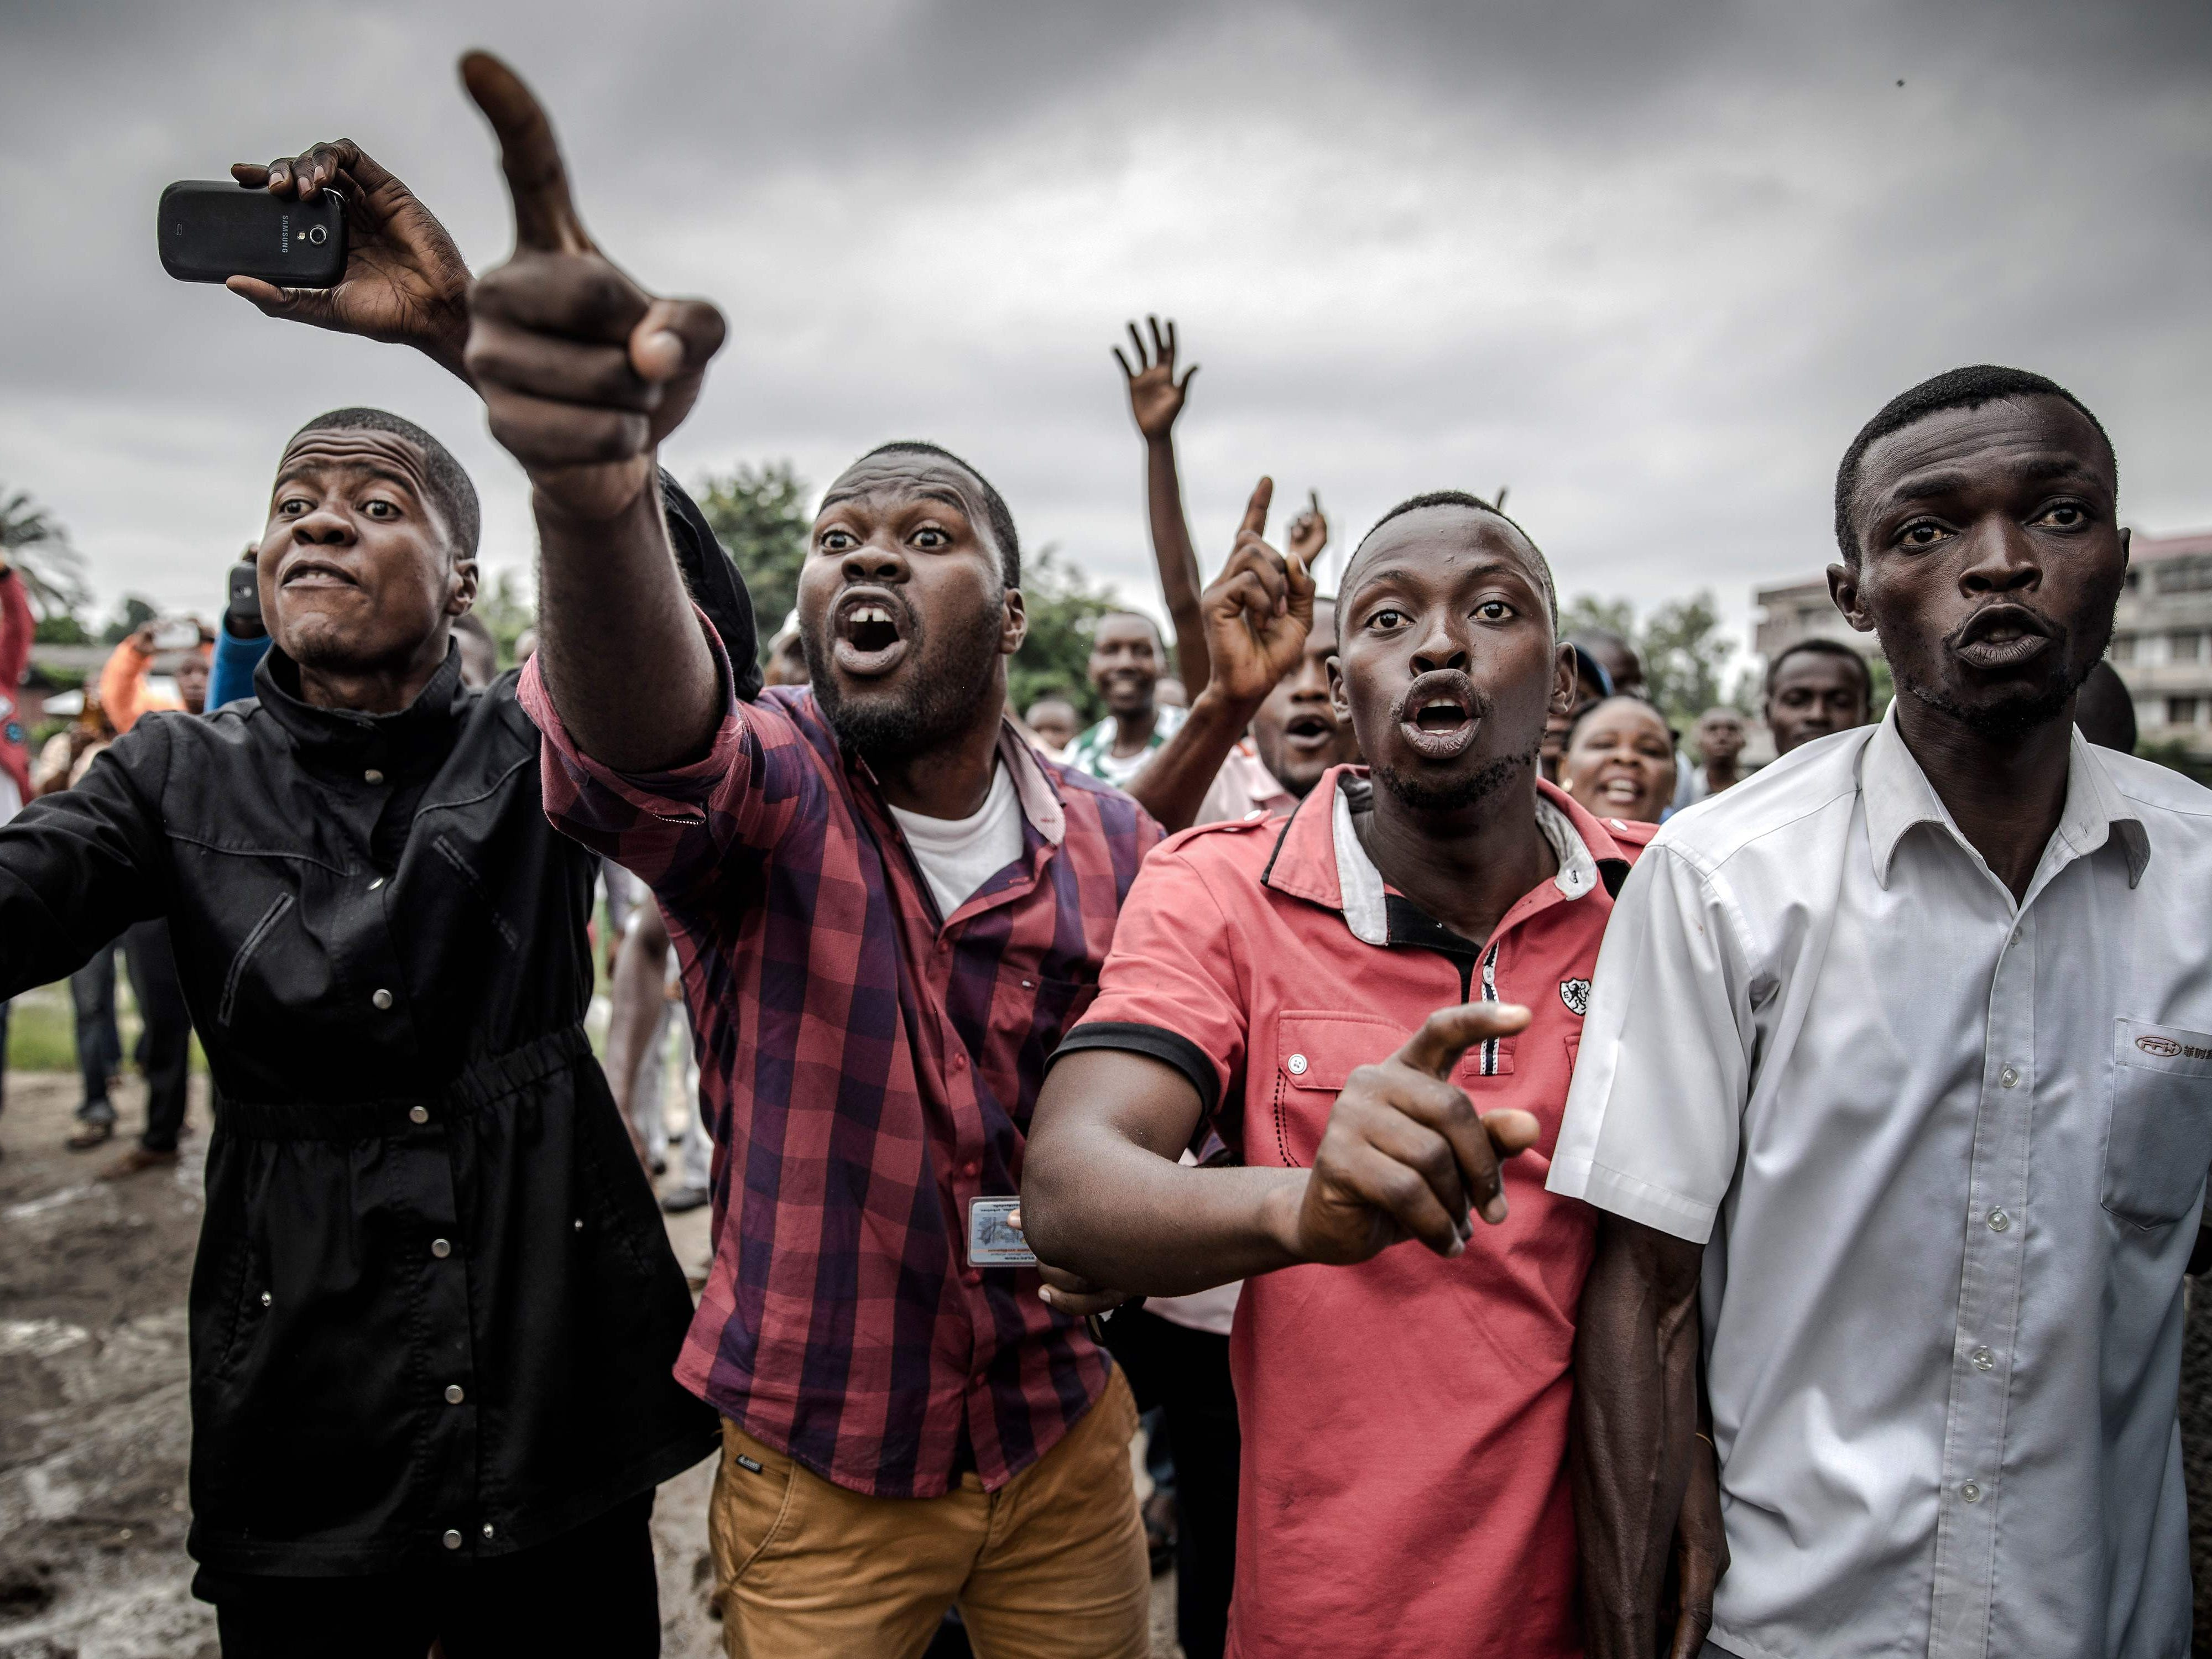 Protesters waiting to cast their ballot, demonstrate outside the College St Raphael polling station, in Kinshasa, on Dec. 30, 2018 while DRC's electoral commission president arrives for the DR Congo's general elections. Voters in the Democratic Republic of Congo went to the polls on Dec. 30, 2018 in elections that will shape the future of their vast, troubled country, amid fears that violence could overshadow the ballot.